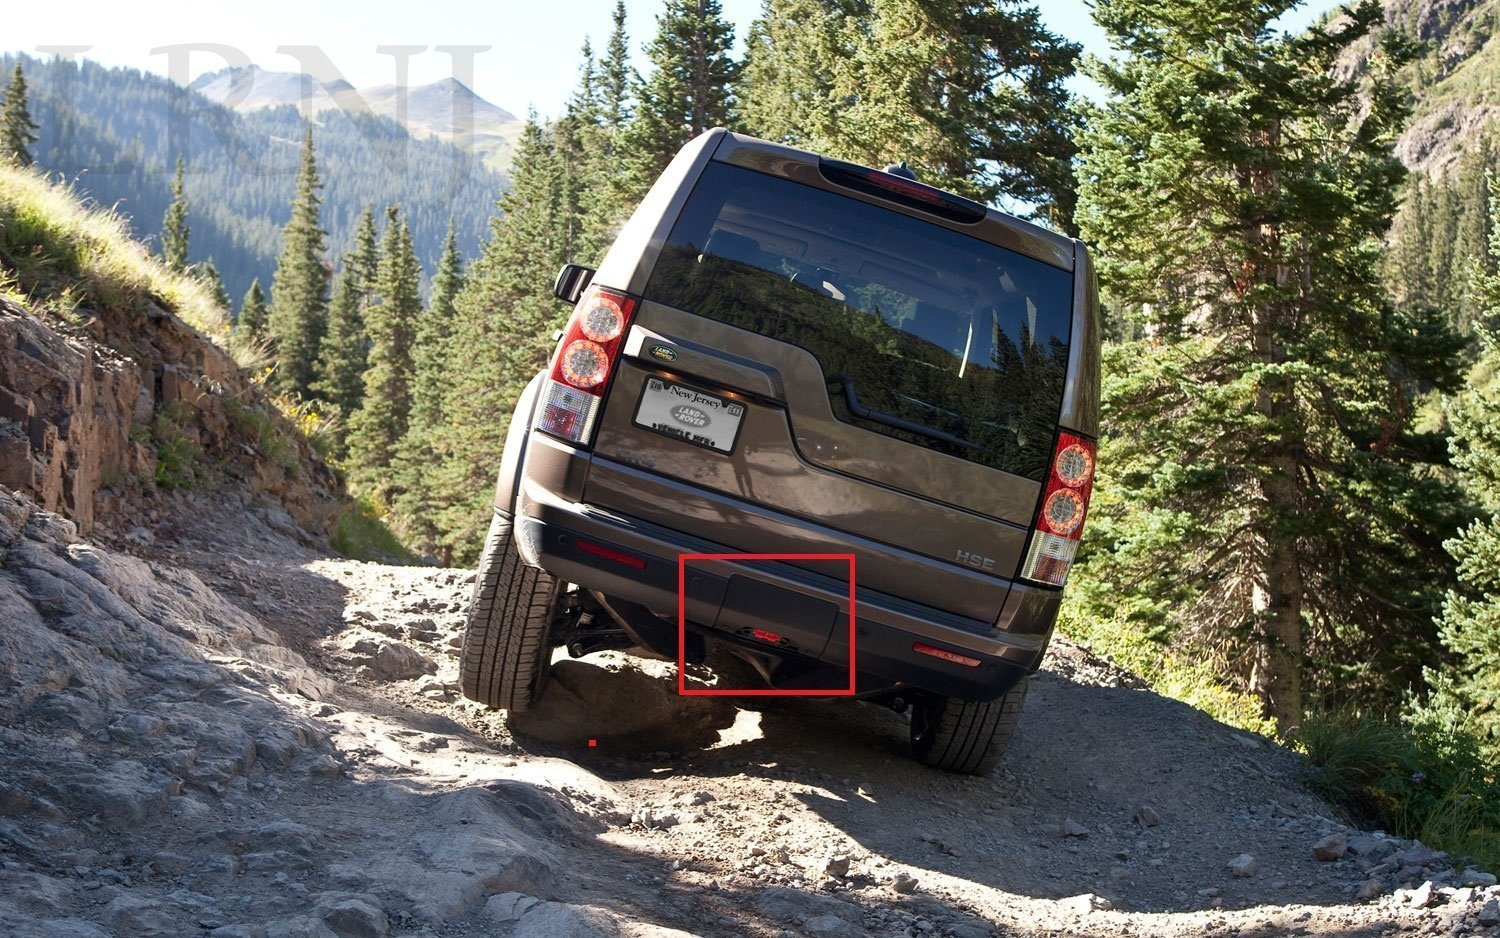 LAND ROVER LR4 / DISCOVERY 4 2010-ON TOW EYE COVER REAR FOR REAR BUMPER DPO500011PCL